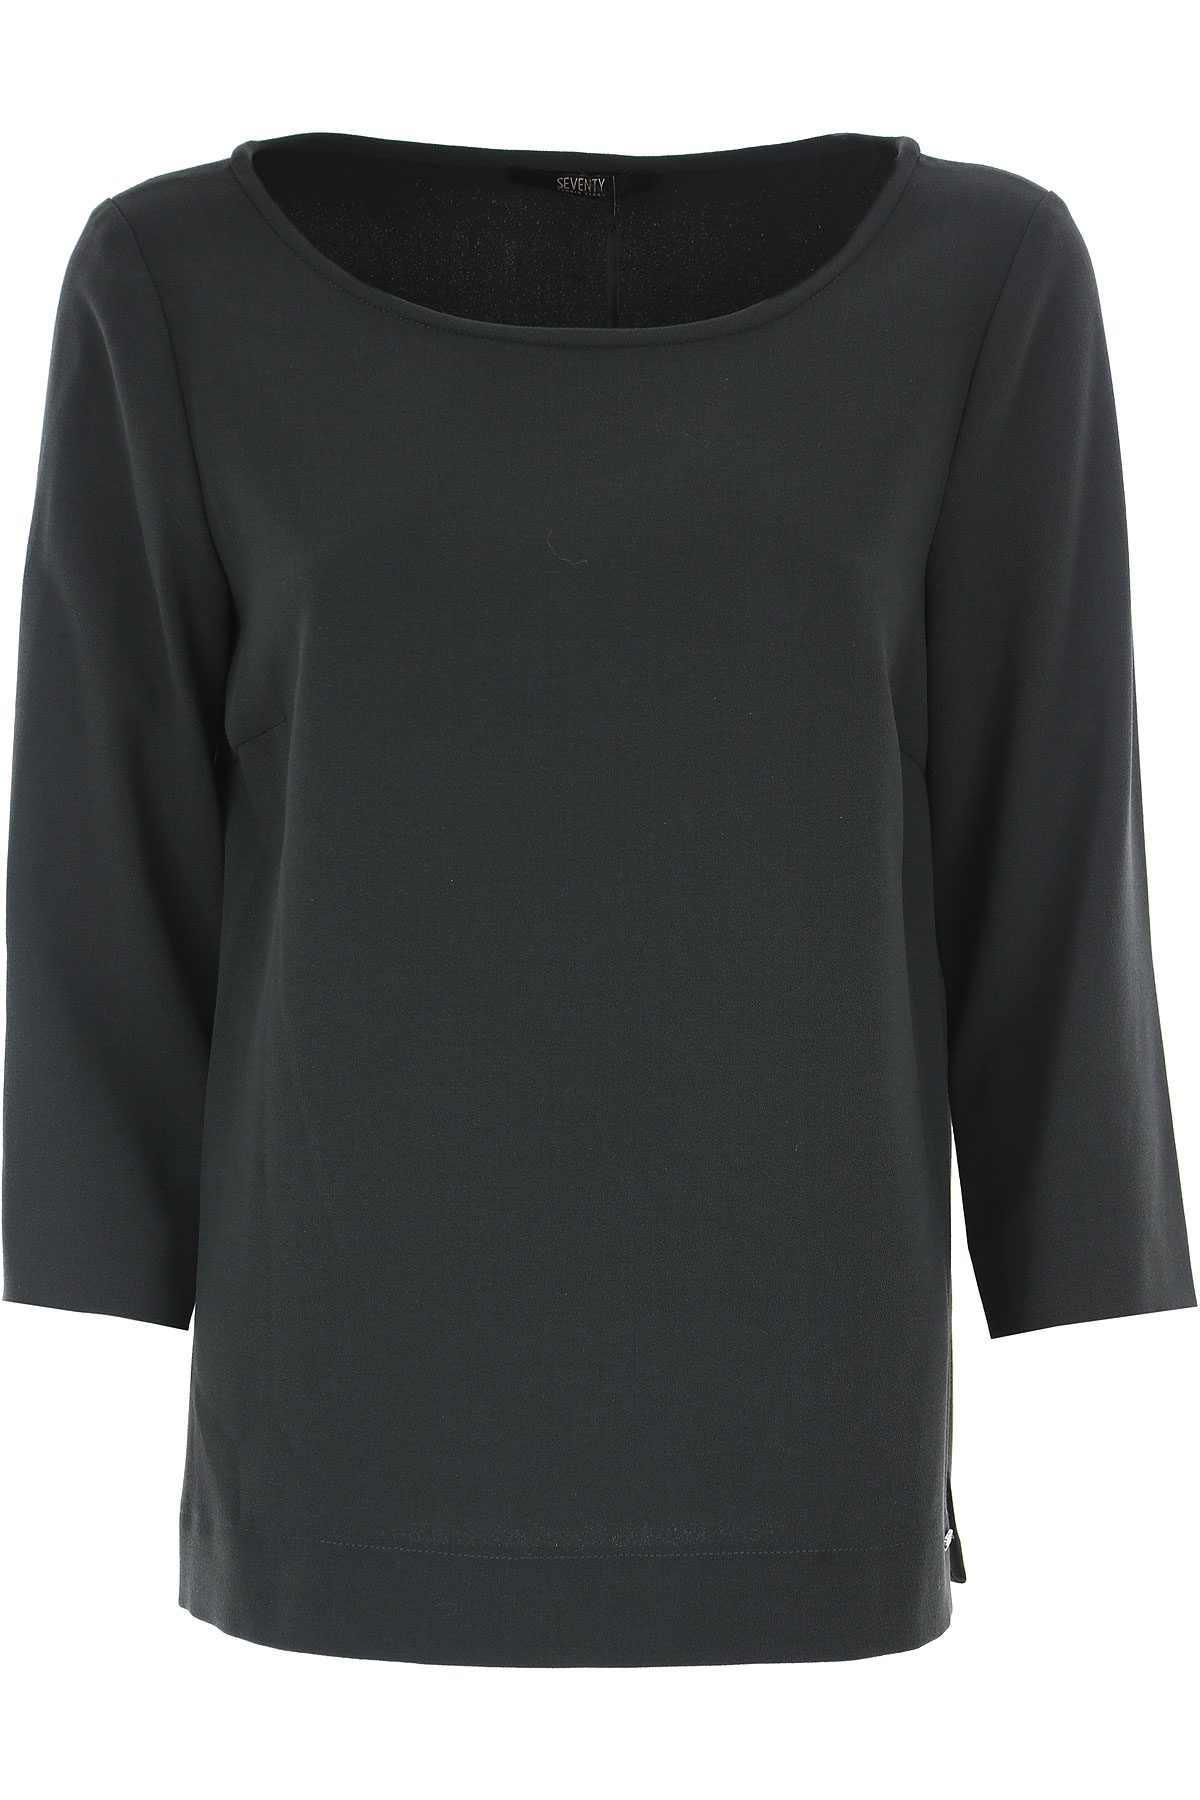 Image of Seventy Top for Women On Sale, Green Forest, polyester, 2017, 12 8